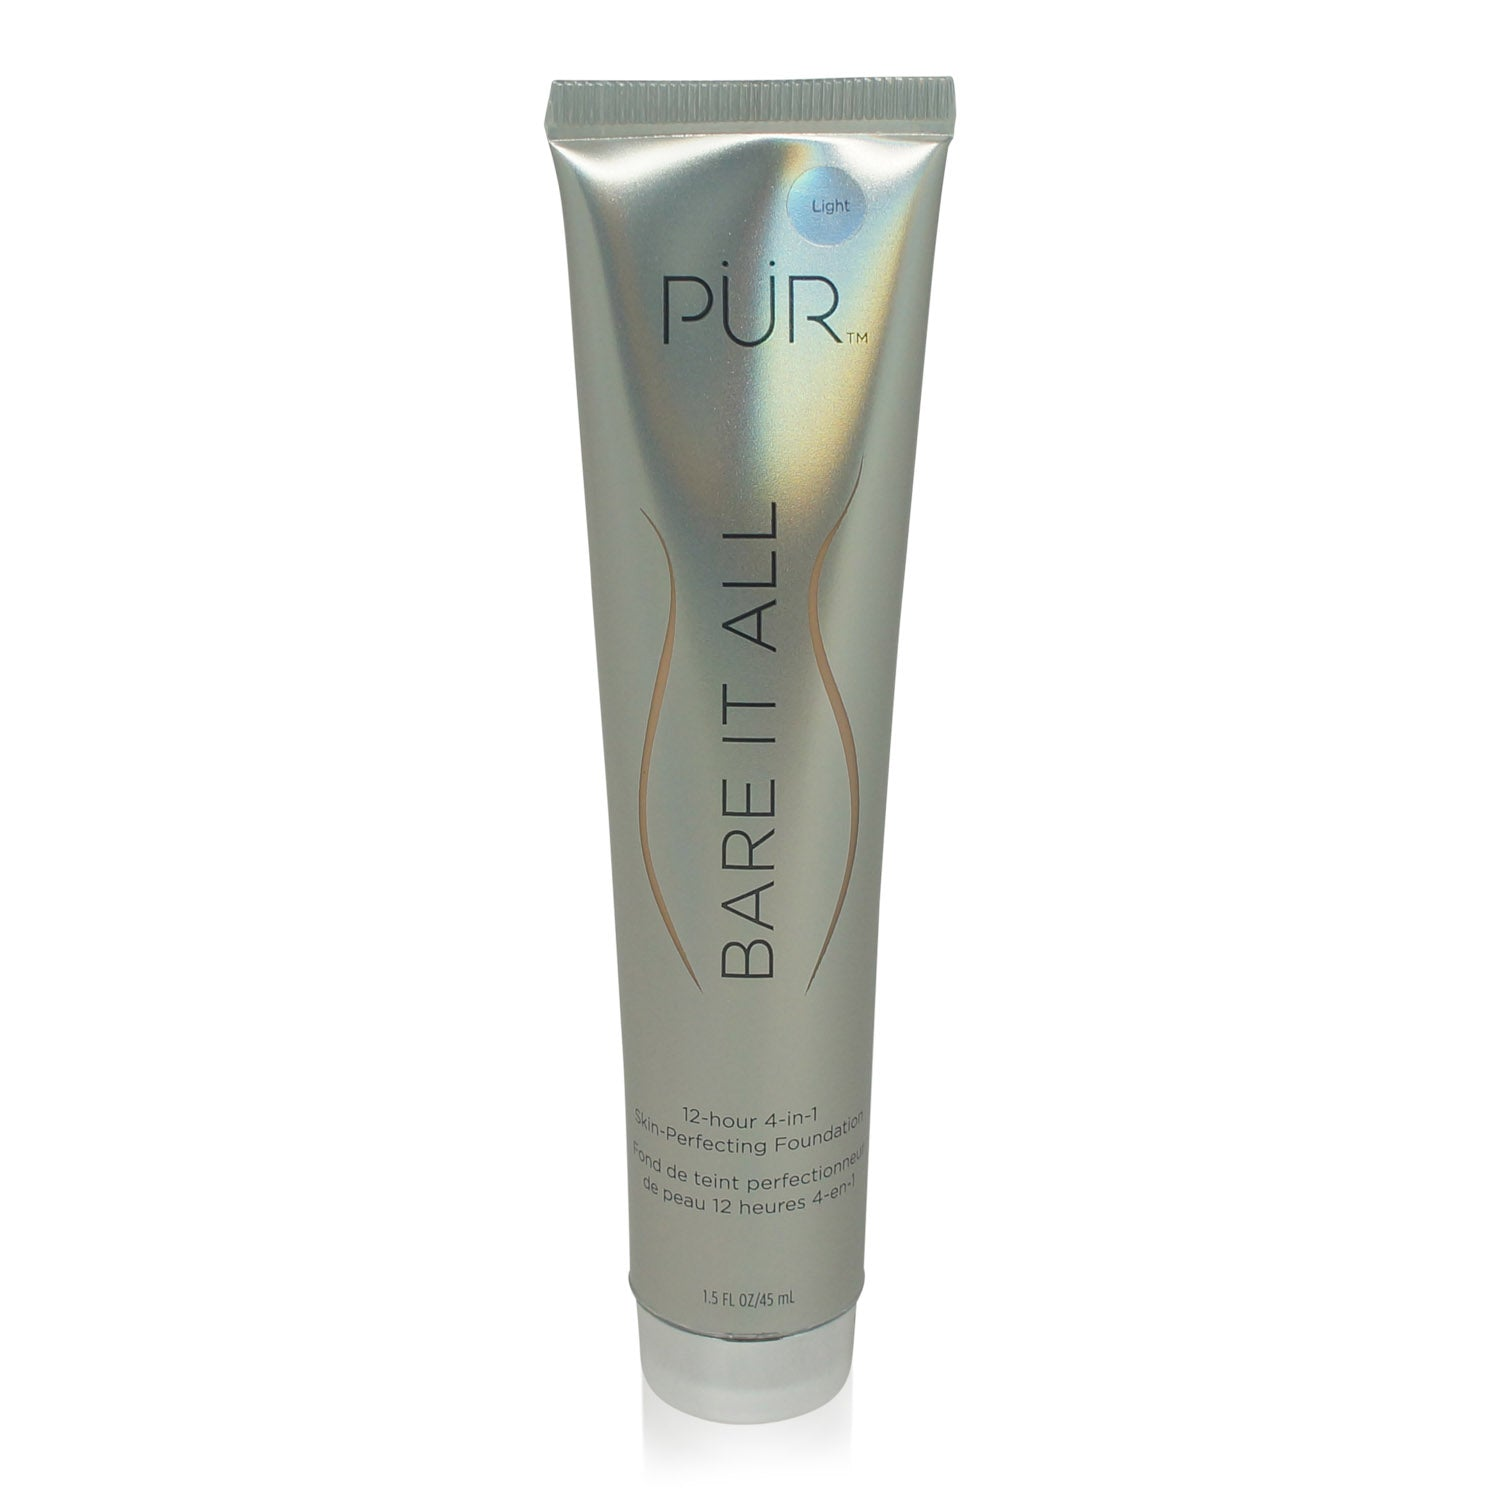 PUR Bare It All 4 in 1 Skin Perfecting Foundation 12 Hour Wear Light 1.5 oz.